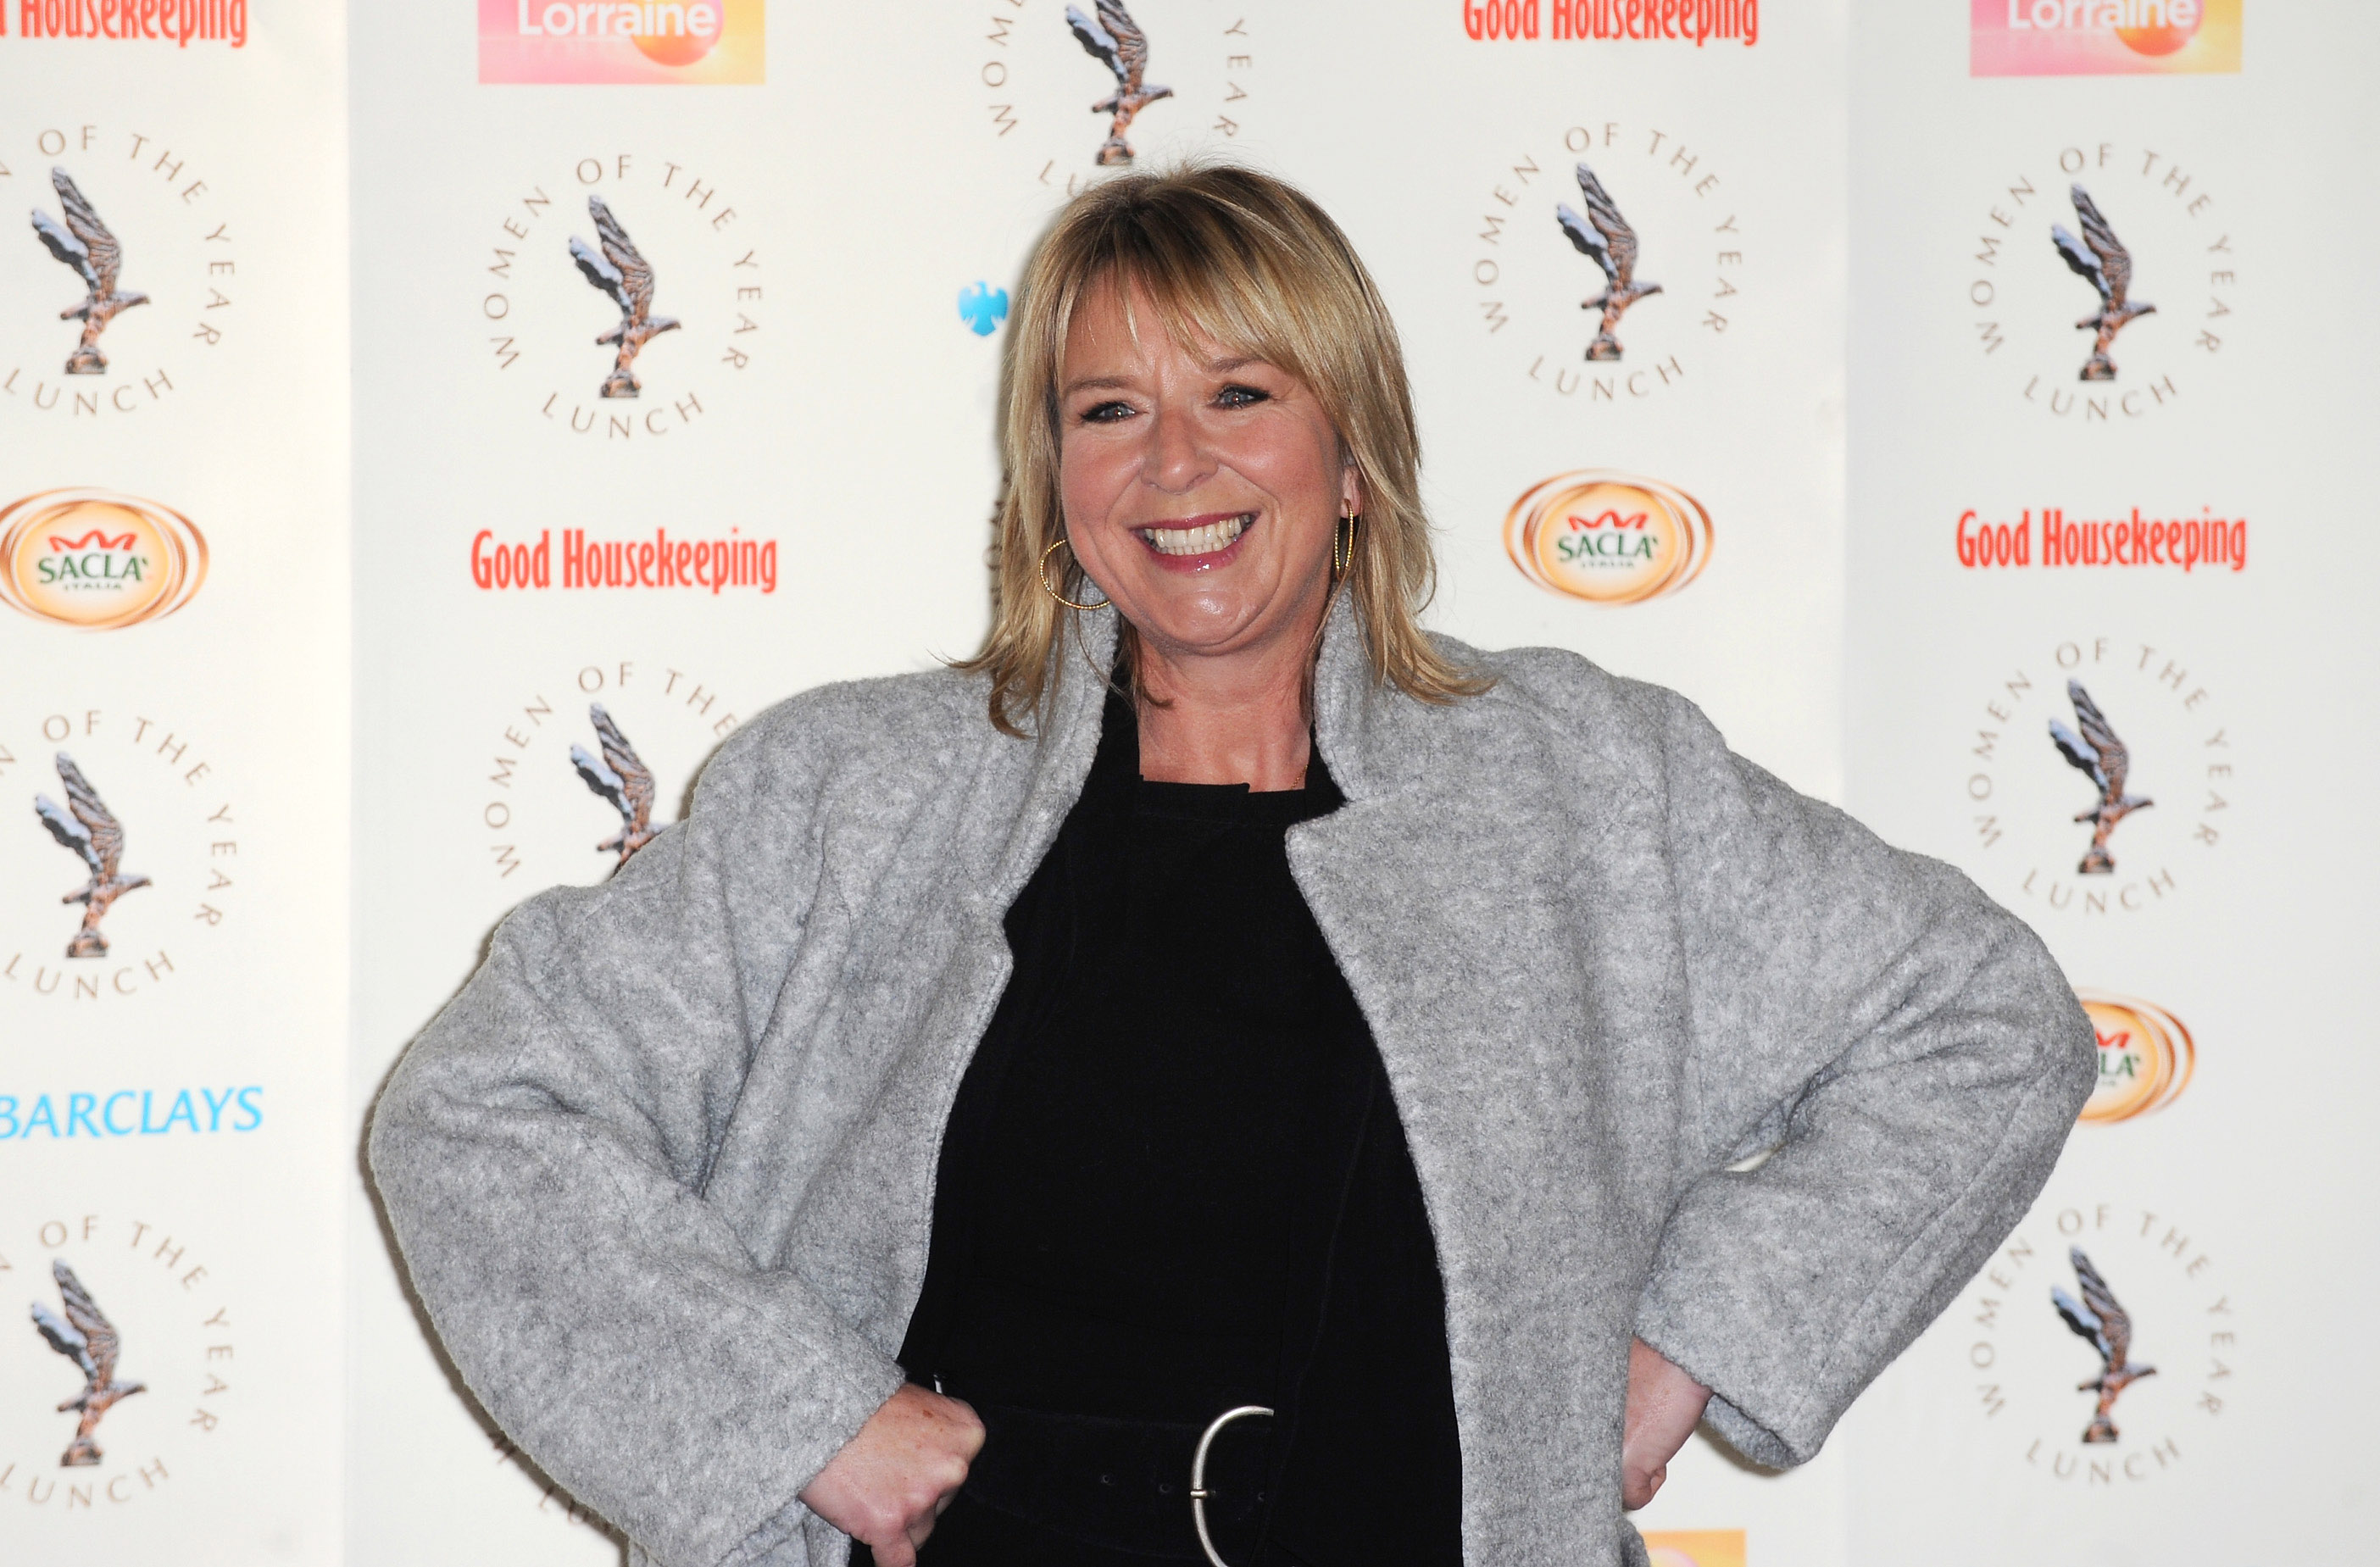 LONDON, ENGLAND - OCTOBER 14:  Fern Britton attends the Women of the Year lunch at Intercontinental Hotel on October 14, 2013 in London, England  (Photo by Ferdaus Shamim/WireImage, BA)